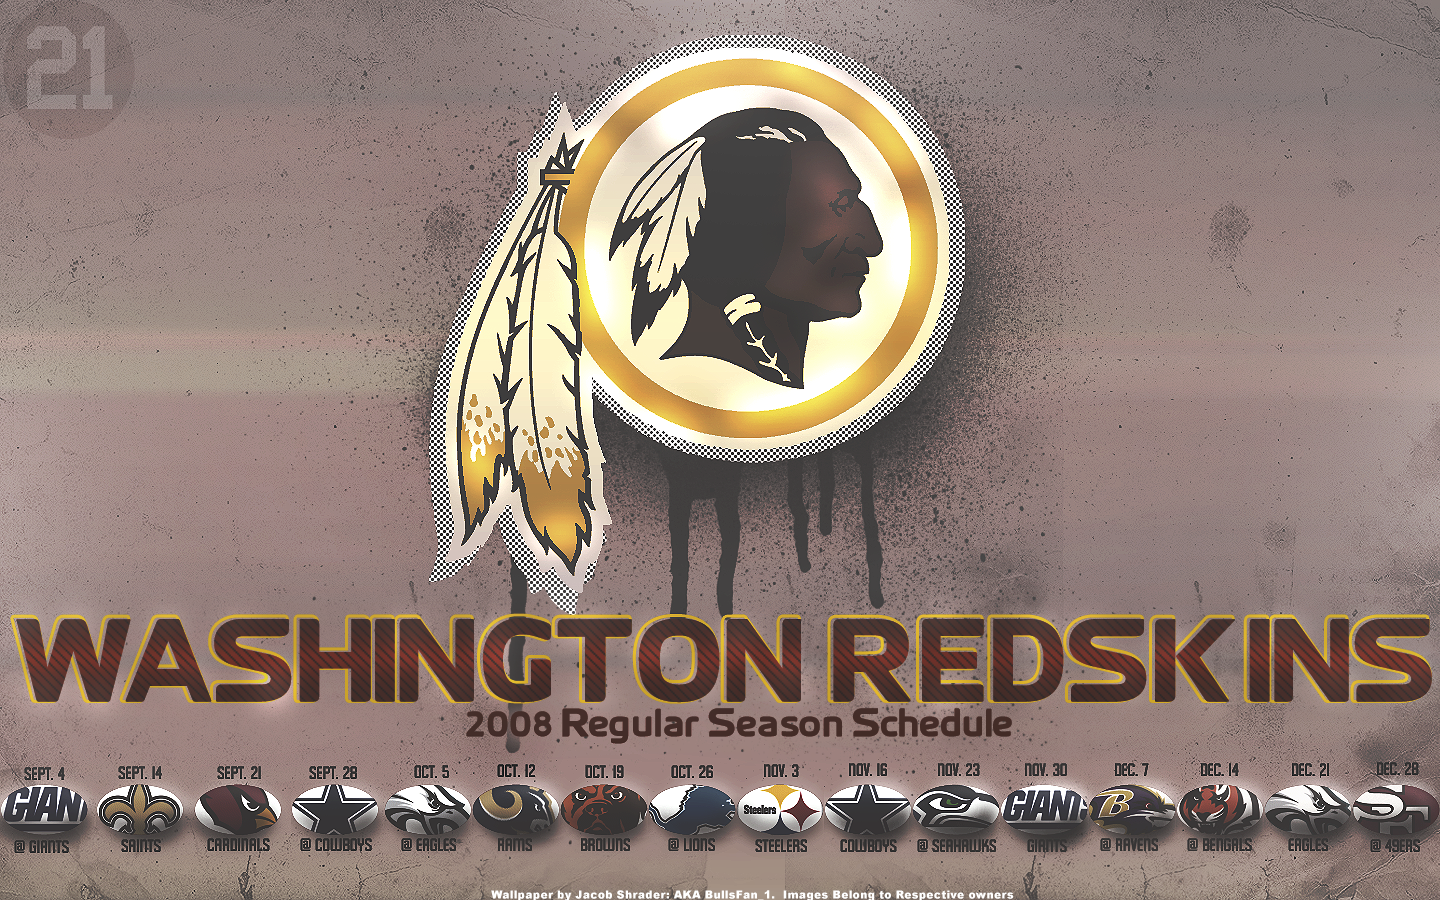 Washingtonredskins Washington Redskins wallpaper Some day